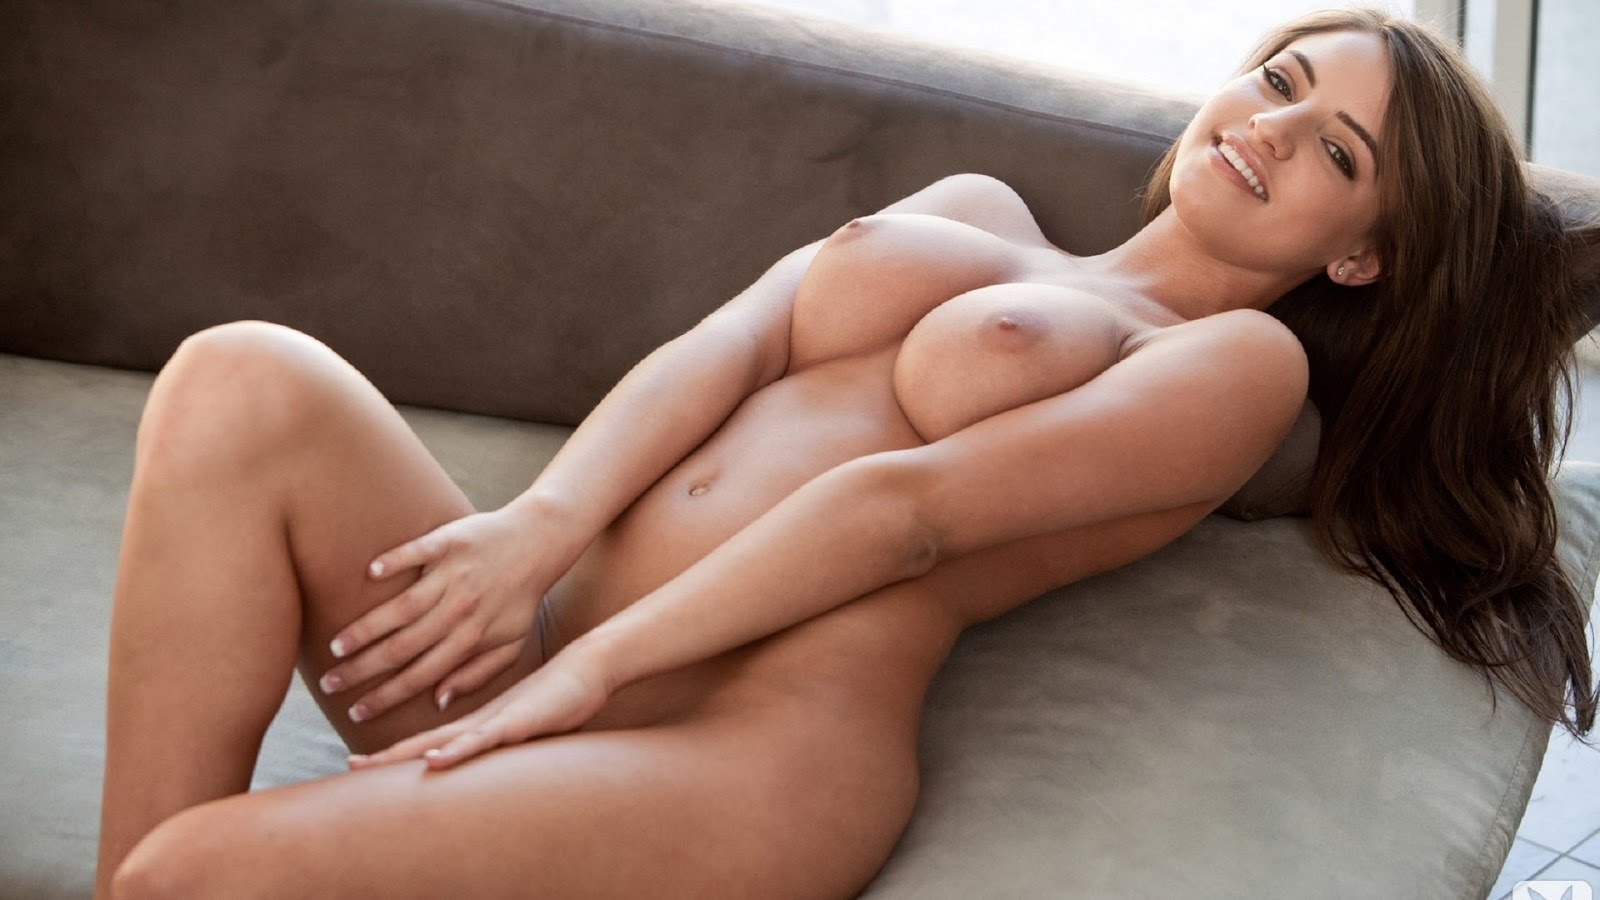 Full Naked Sexy Women